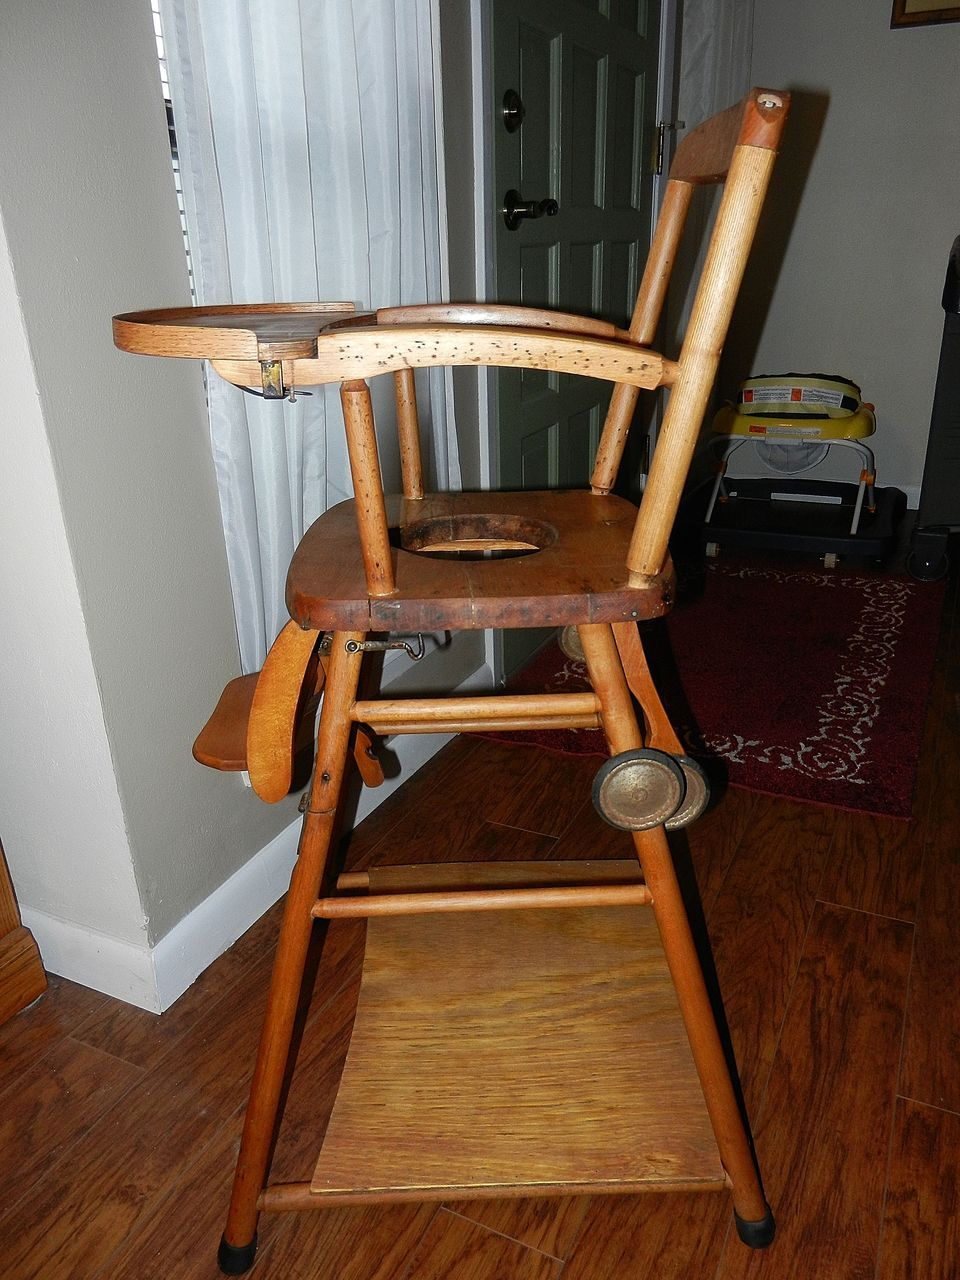 Vintage wooden high chair potty chair and play chair in for Antique high chairs